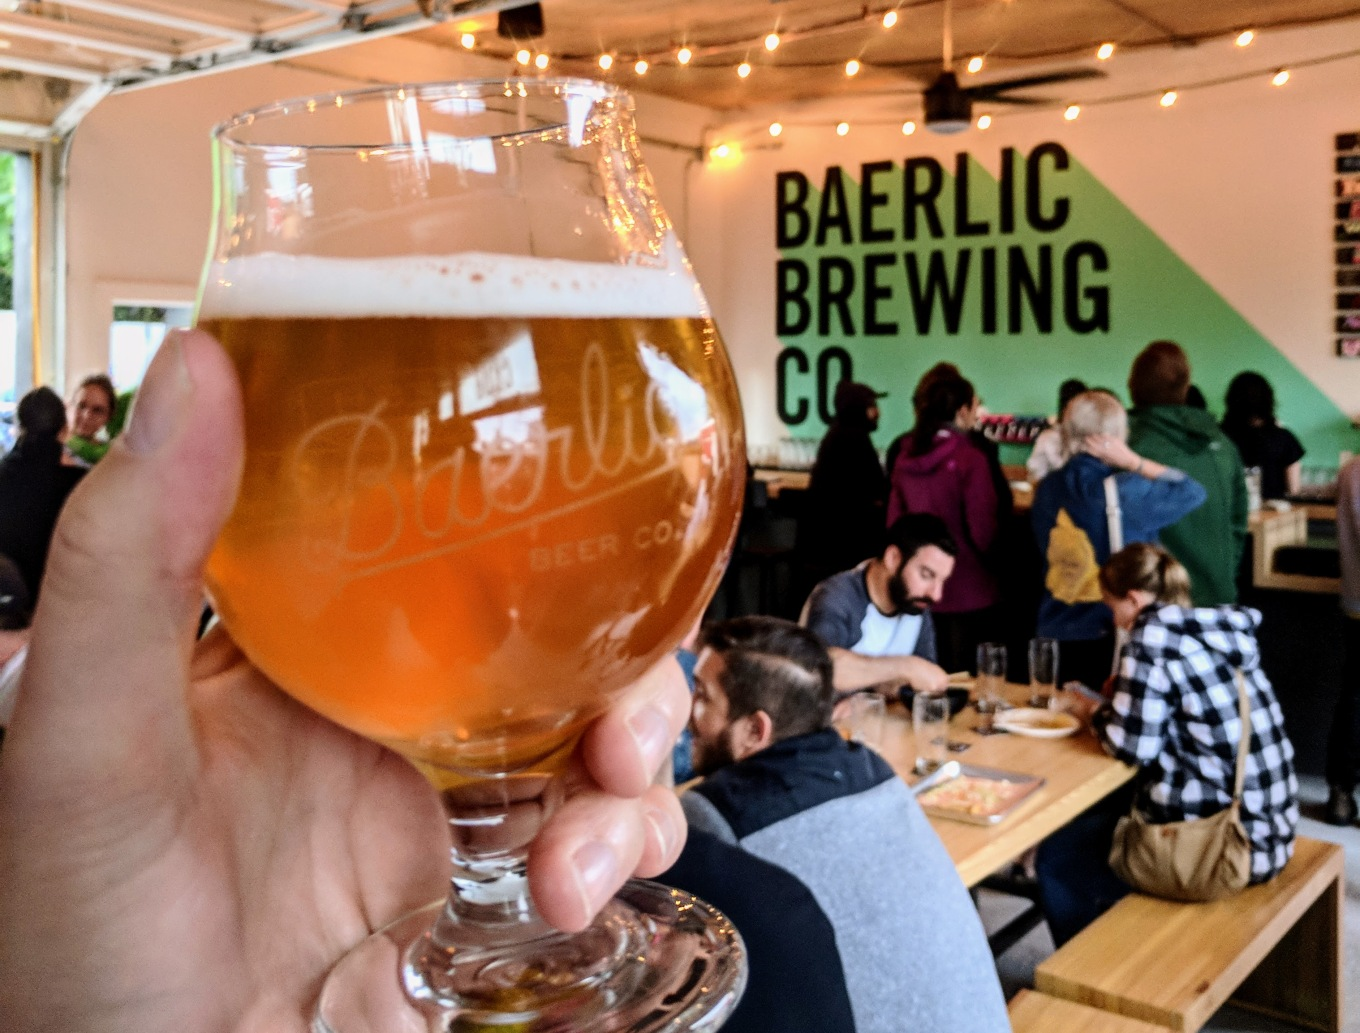 Baerlic Brewing Beer Hall at the Barley Pod Portland Oregon